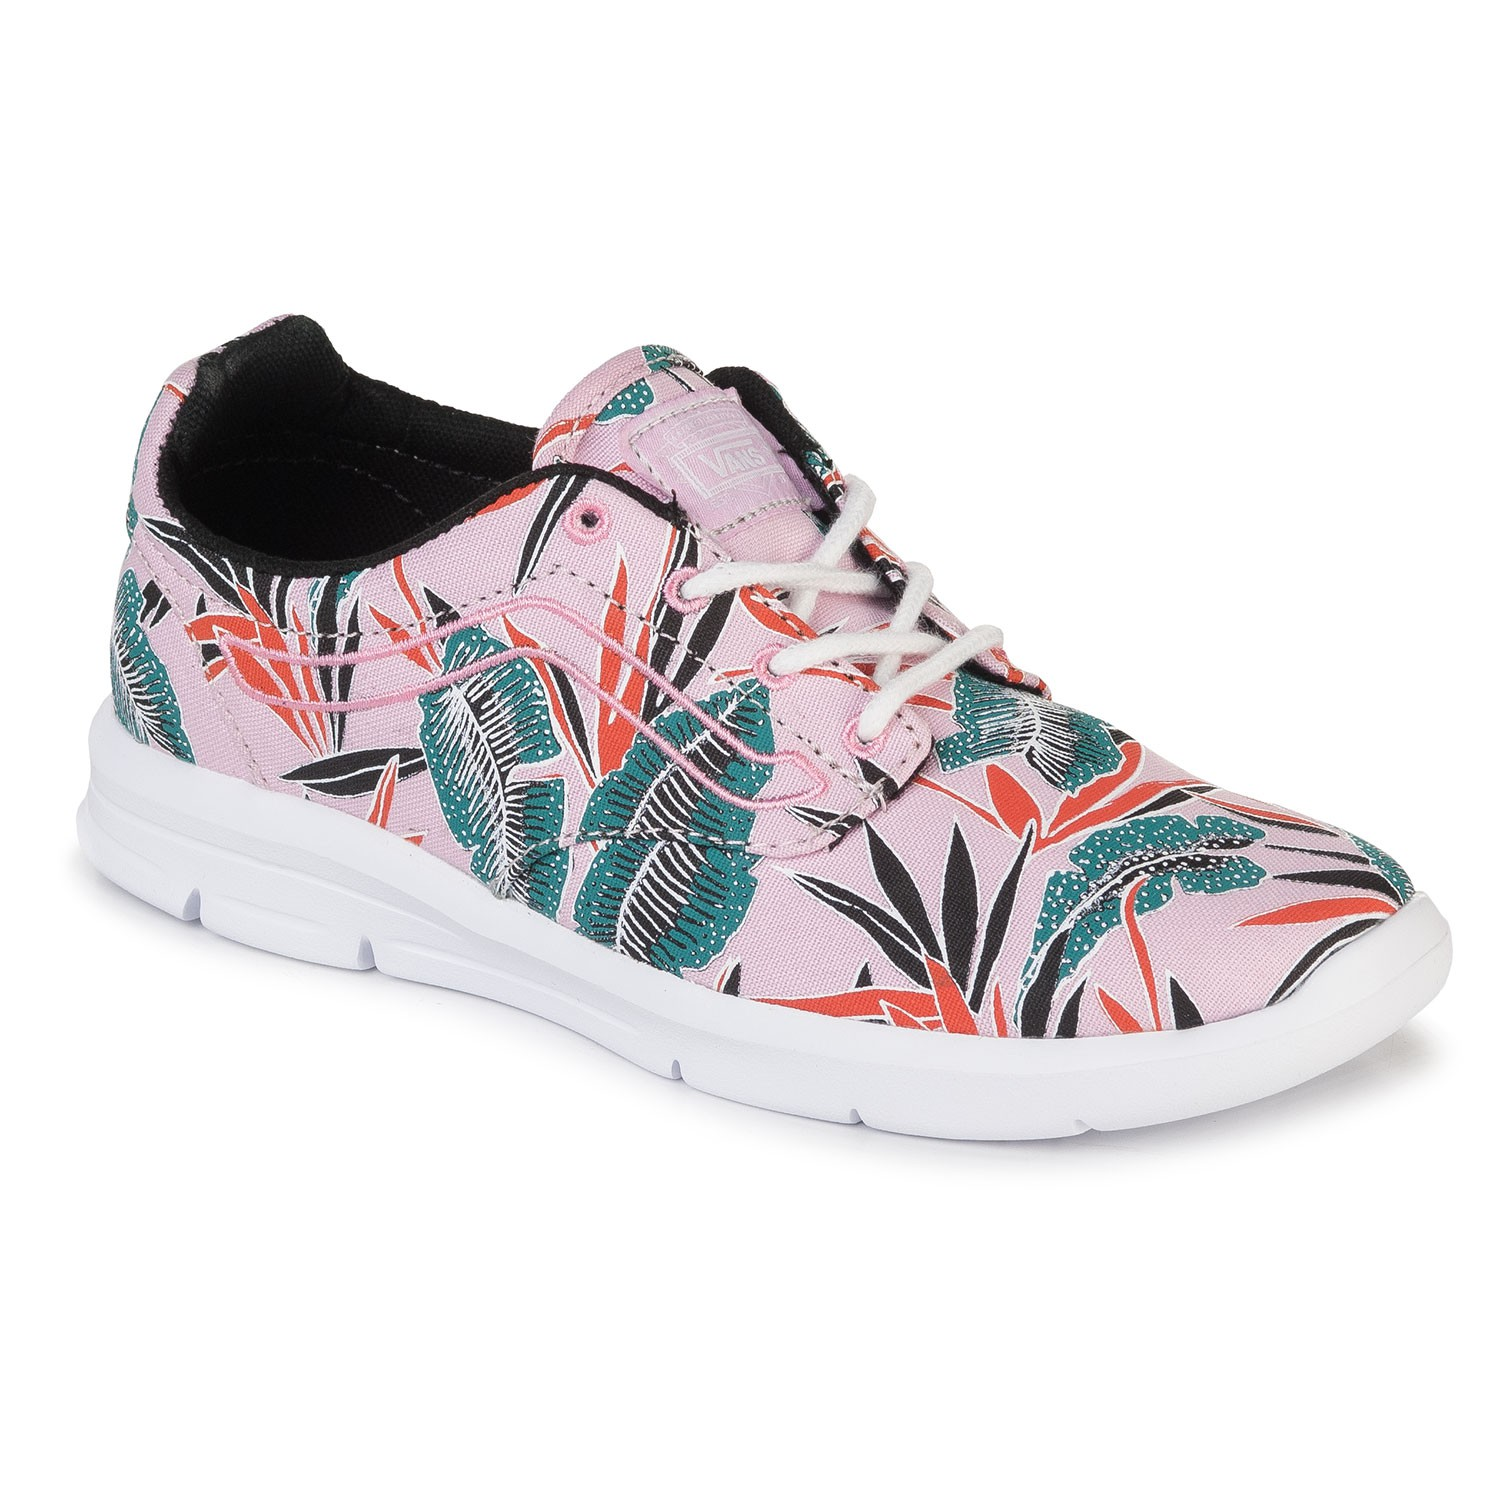 7bb20aa905 Sneakers Vans Iso 1.5 Kids tropical leaves pink